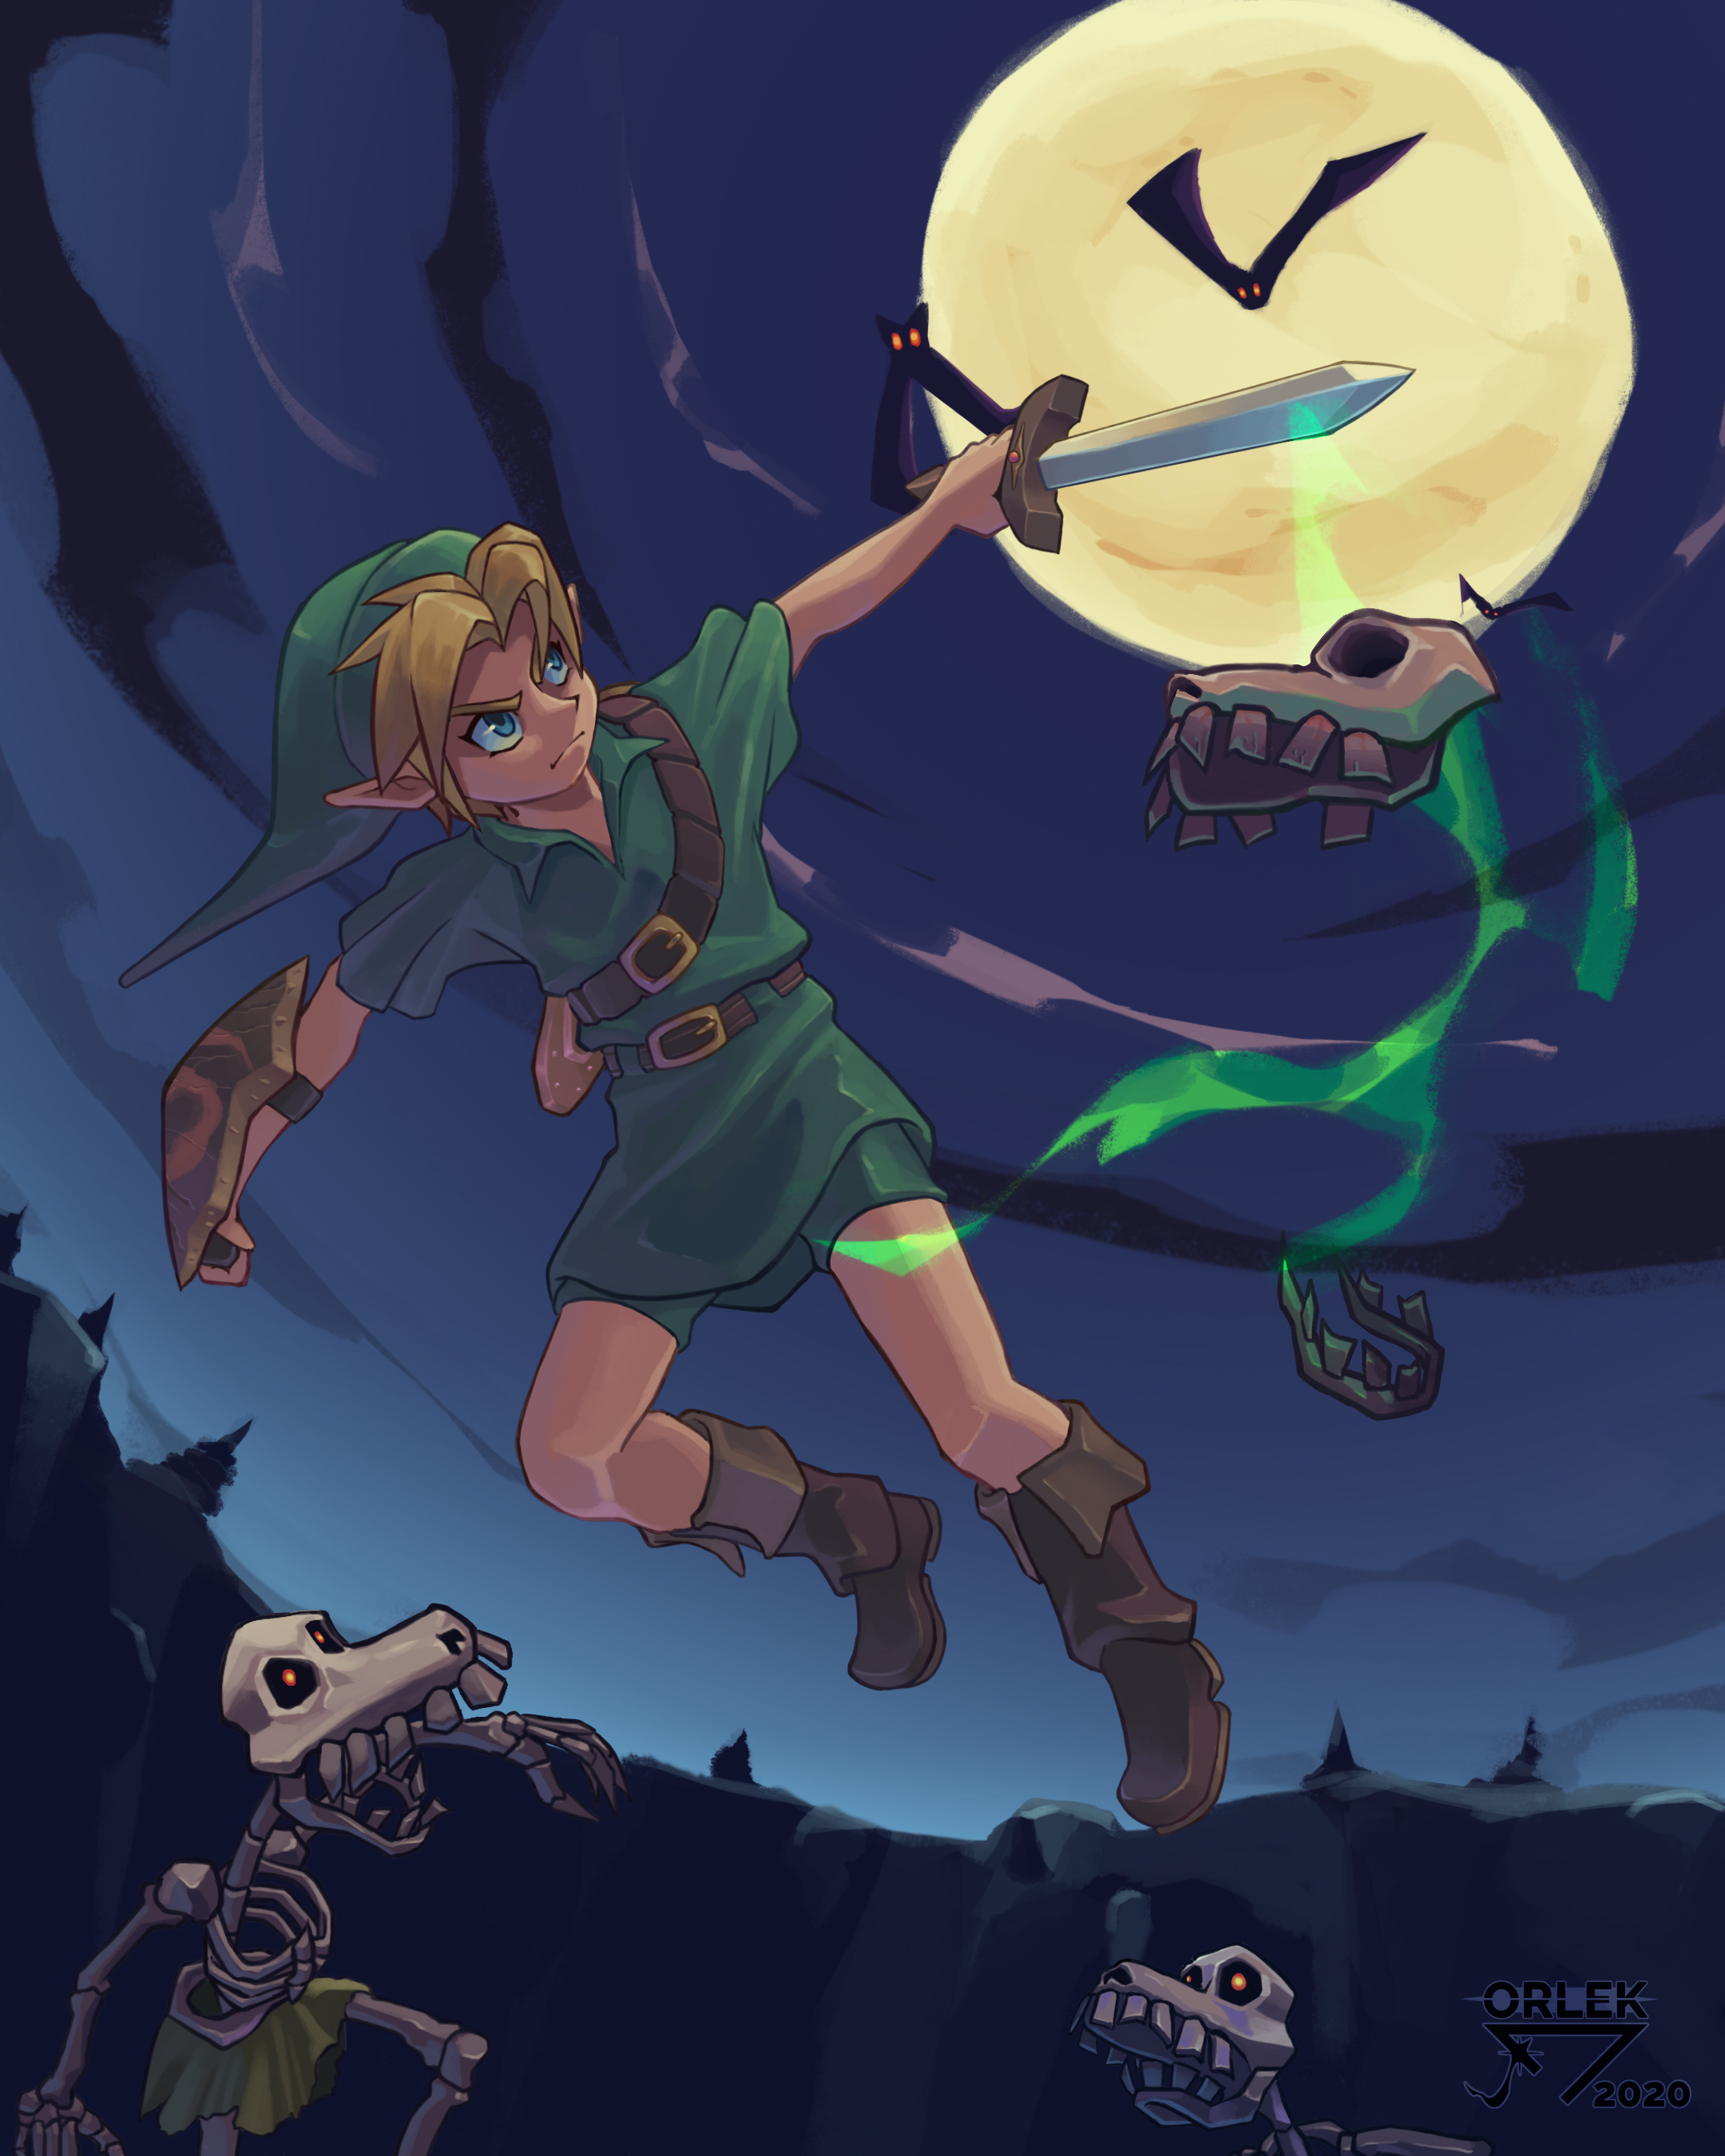 Young Link - Oot by Orlek-sketch on Newgrounds